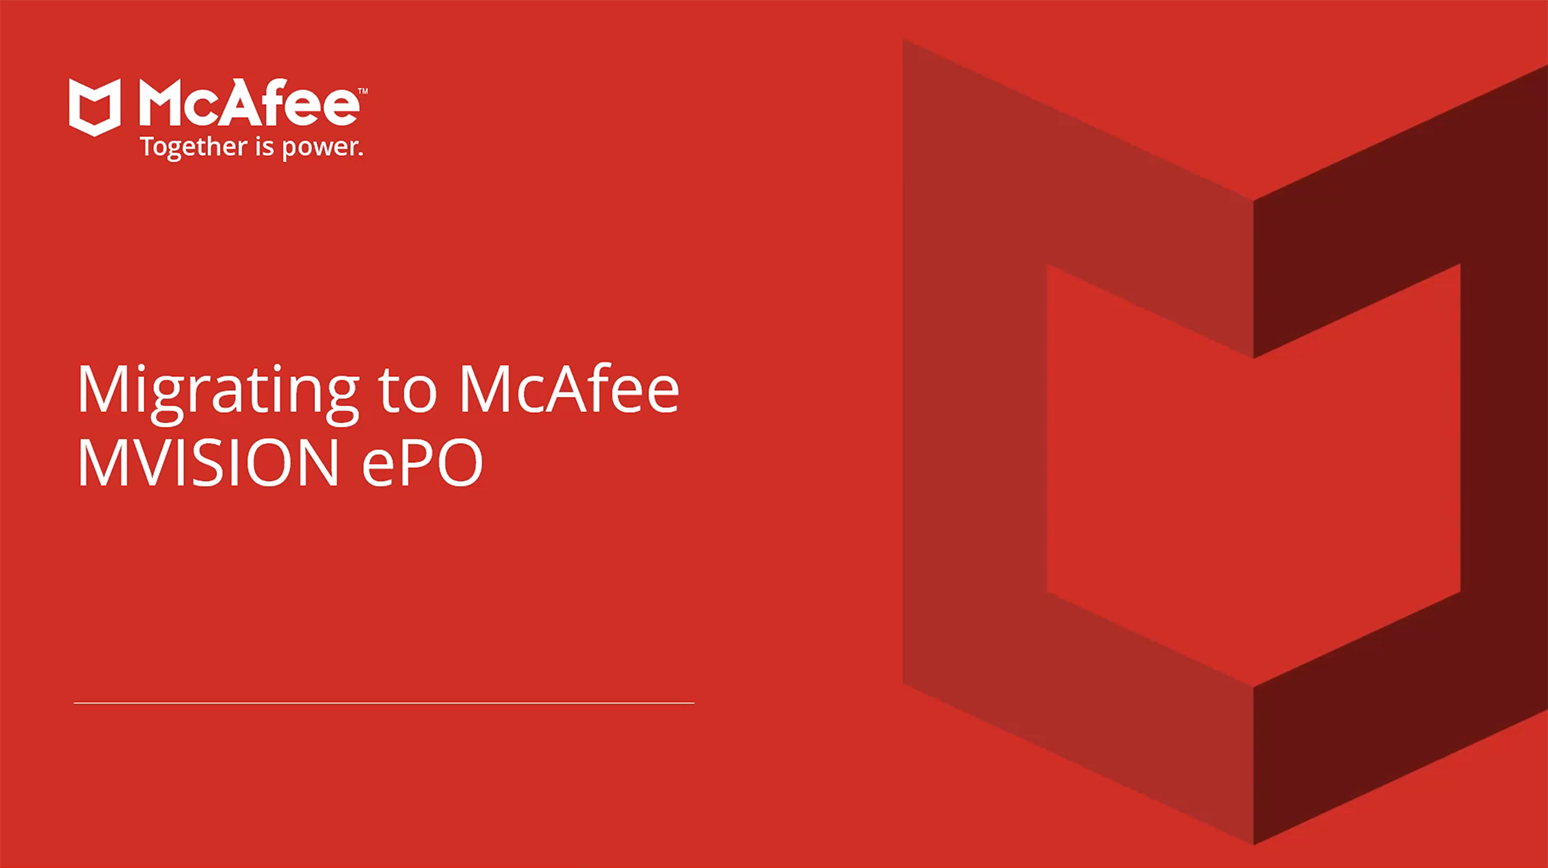 Migrating to McAfee MVISION ePO